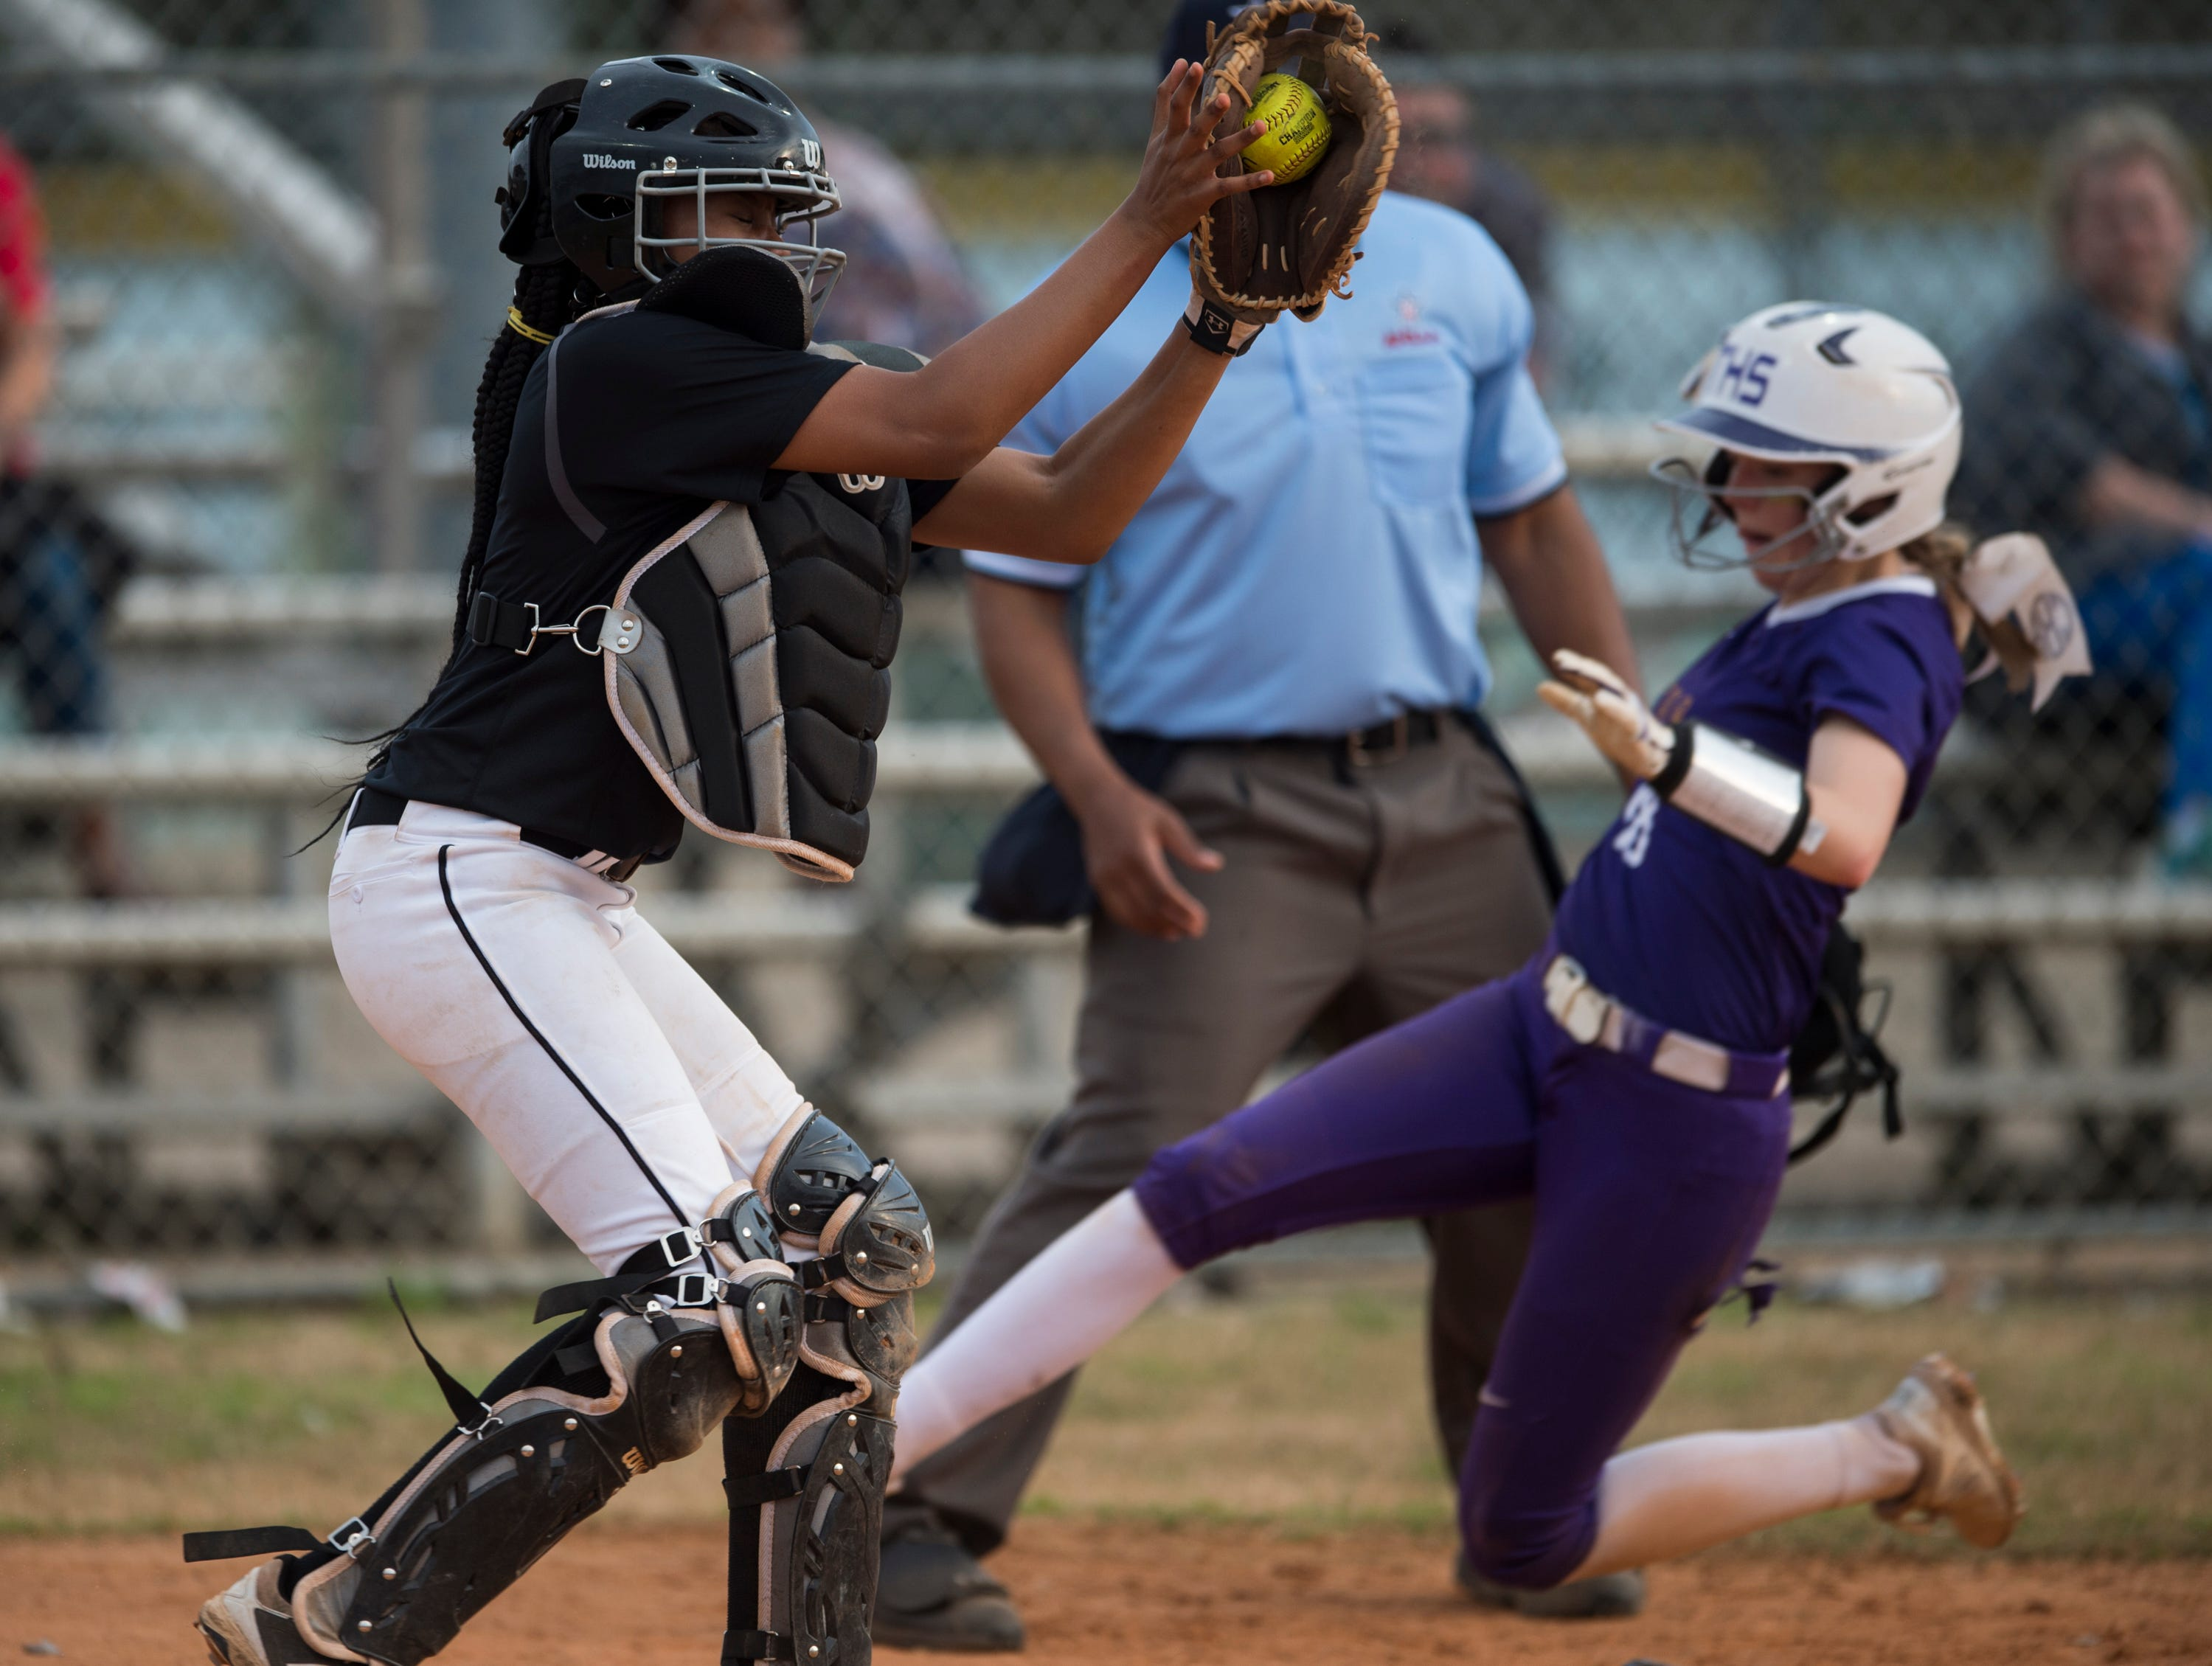 Tallassee's Chloe Baynes (18) slides safely into home plate past Brew Tech's Airele Anderson (9) at Thompson Park in Montgomery, Ala., on Thursday, March 14, 2019. Tallassee defeated Brew Tech 7-0.